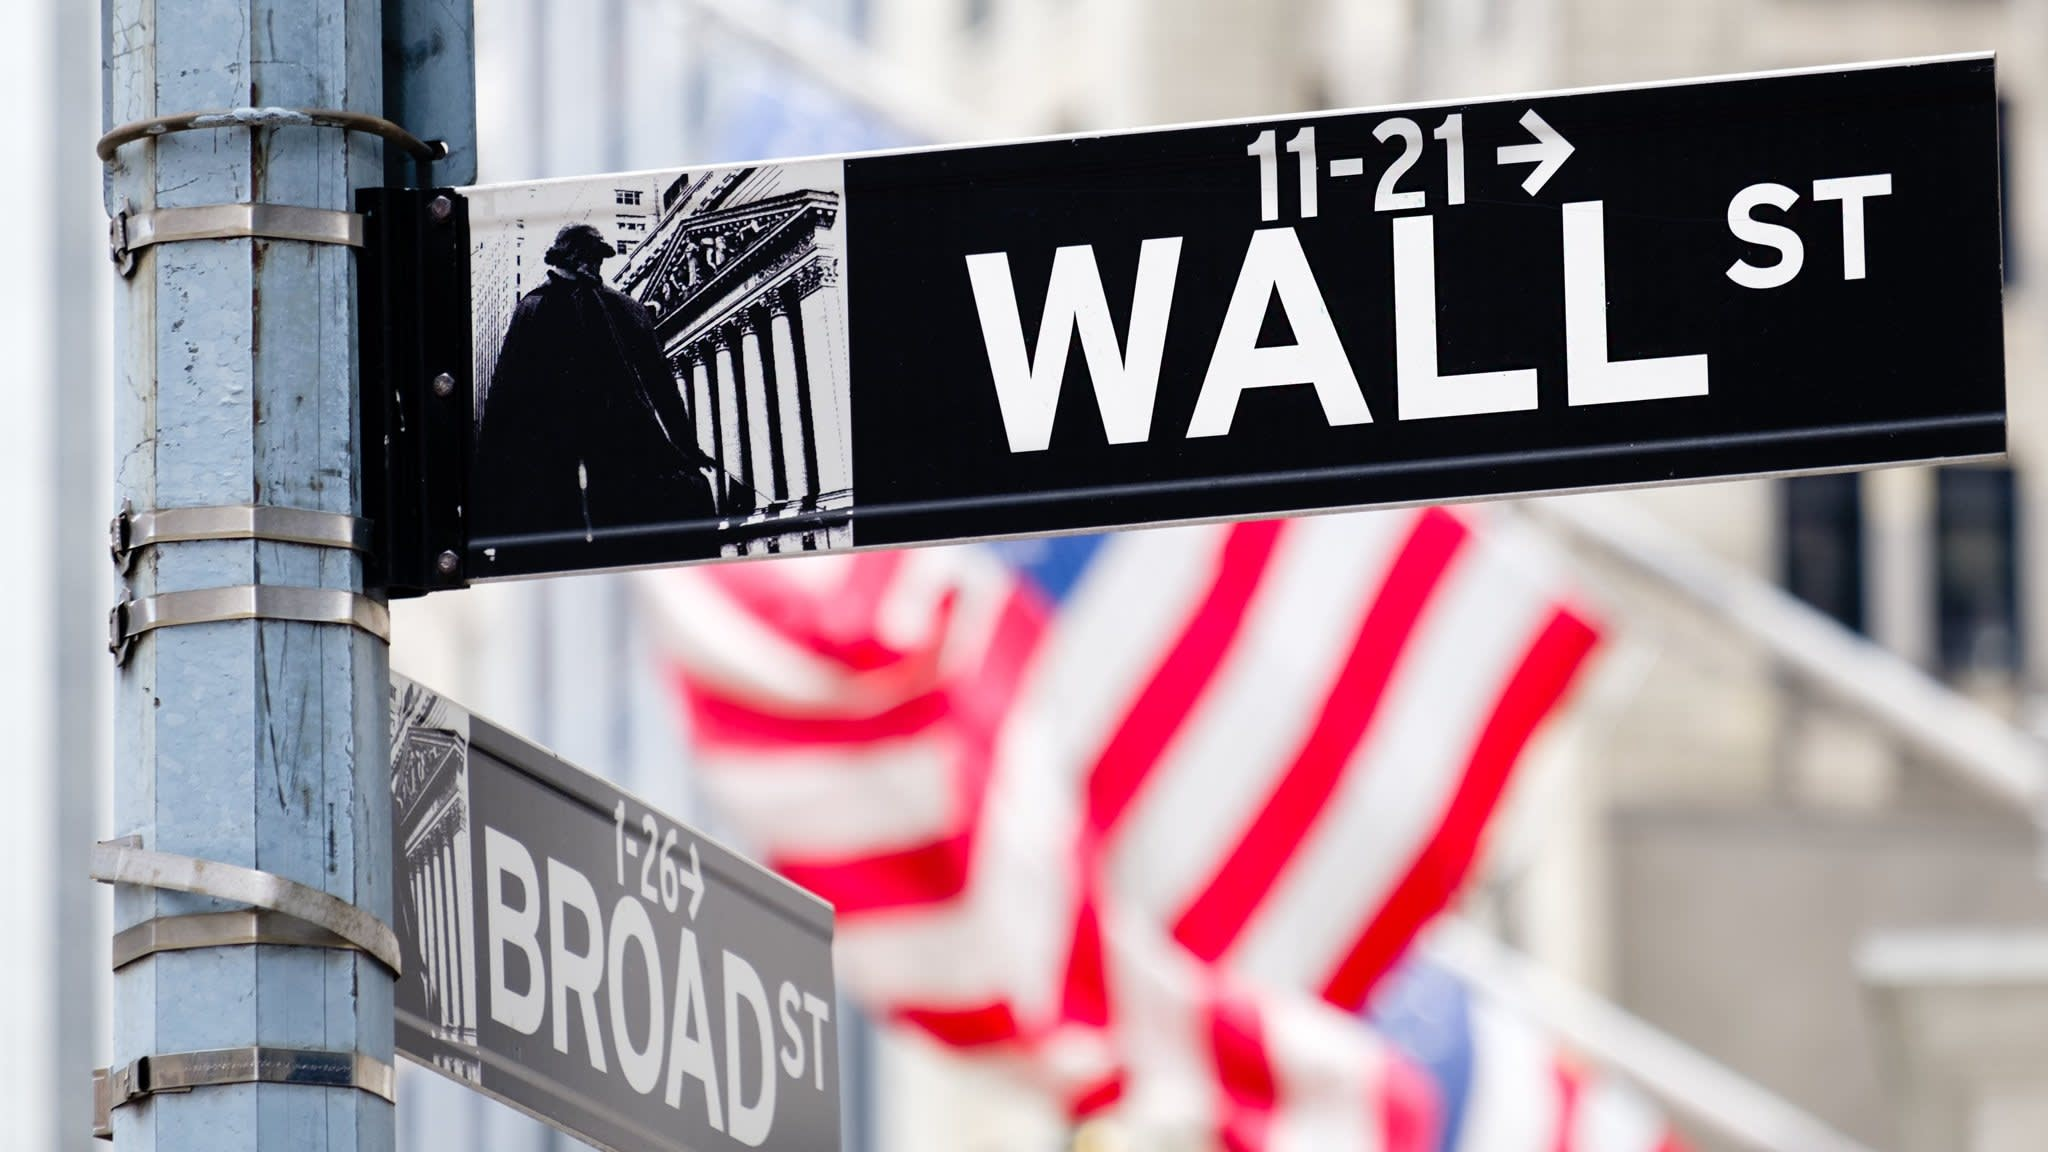 Two public pension funds 'wasted $5.5bn on Wall St fees'